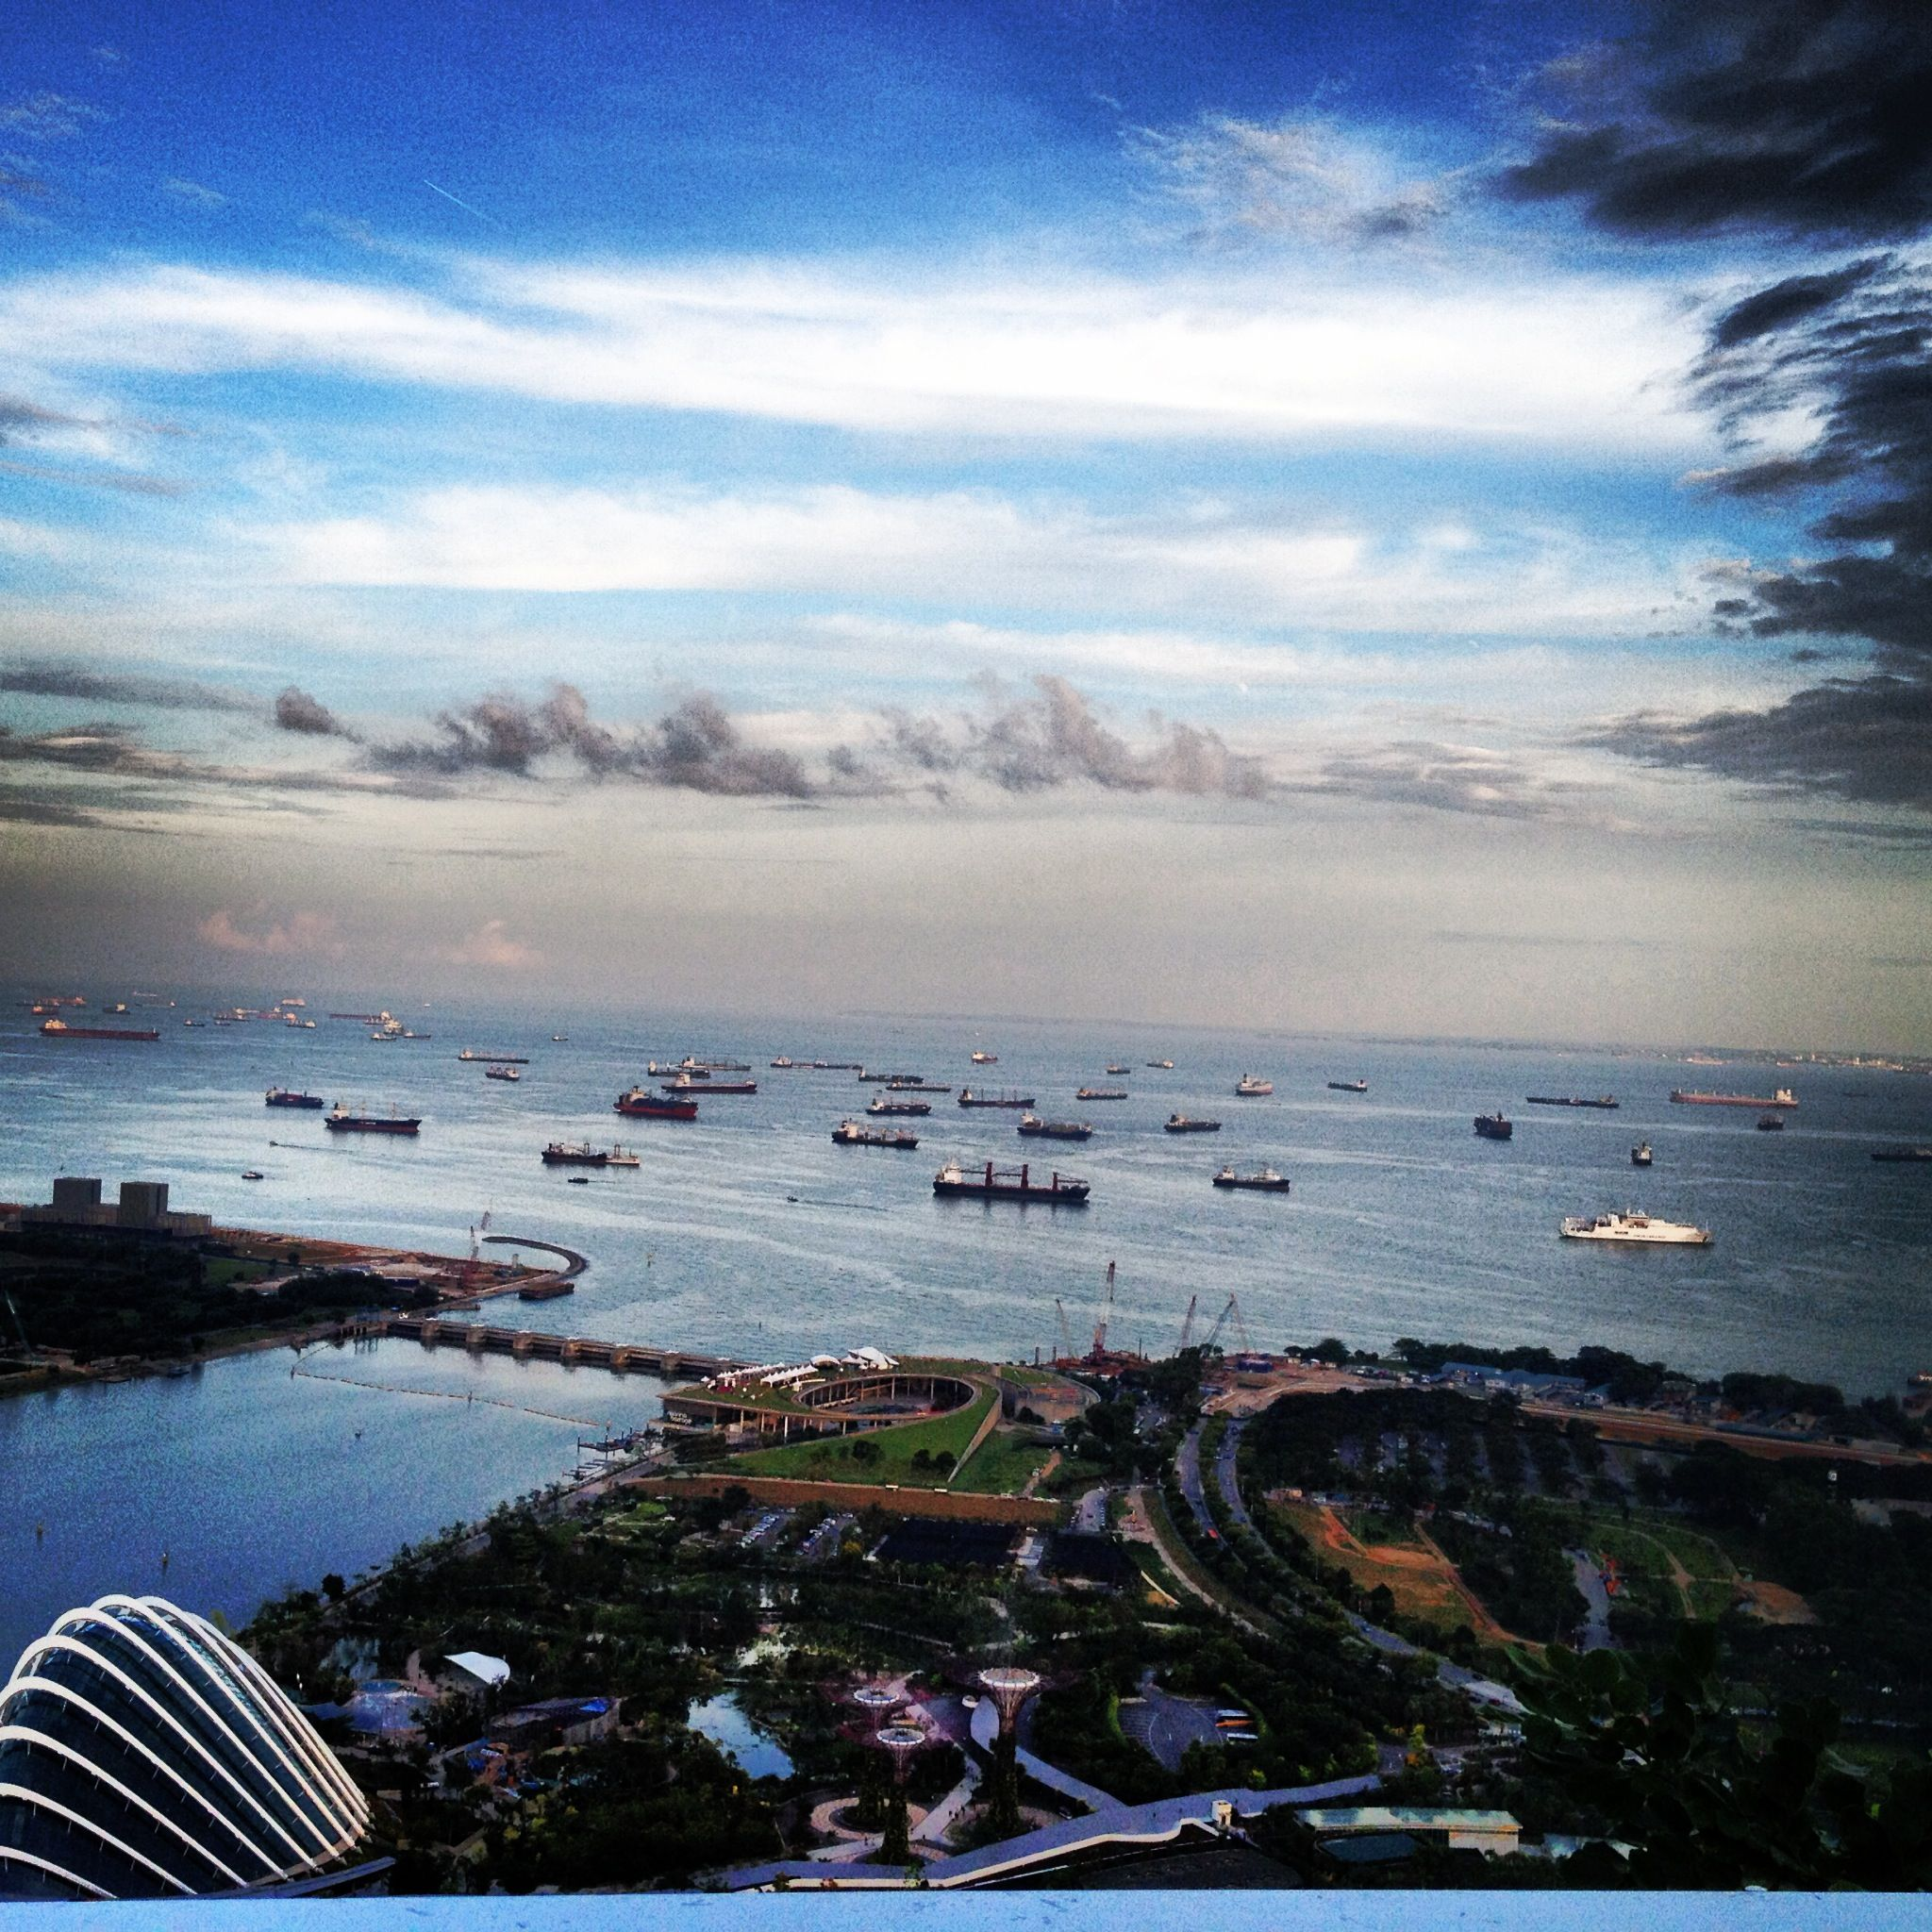 Photo from my recent trip to Singapore. They have the most picturesque landscapes.